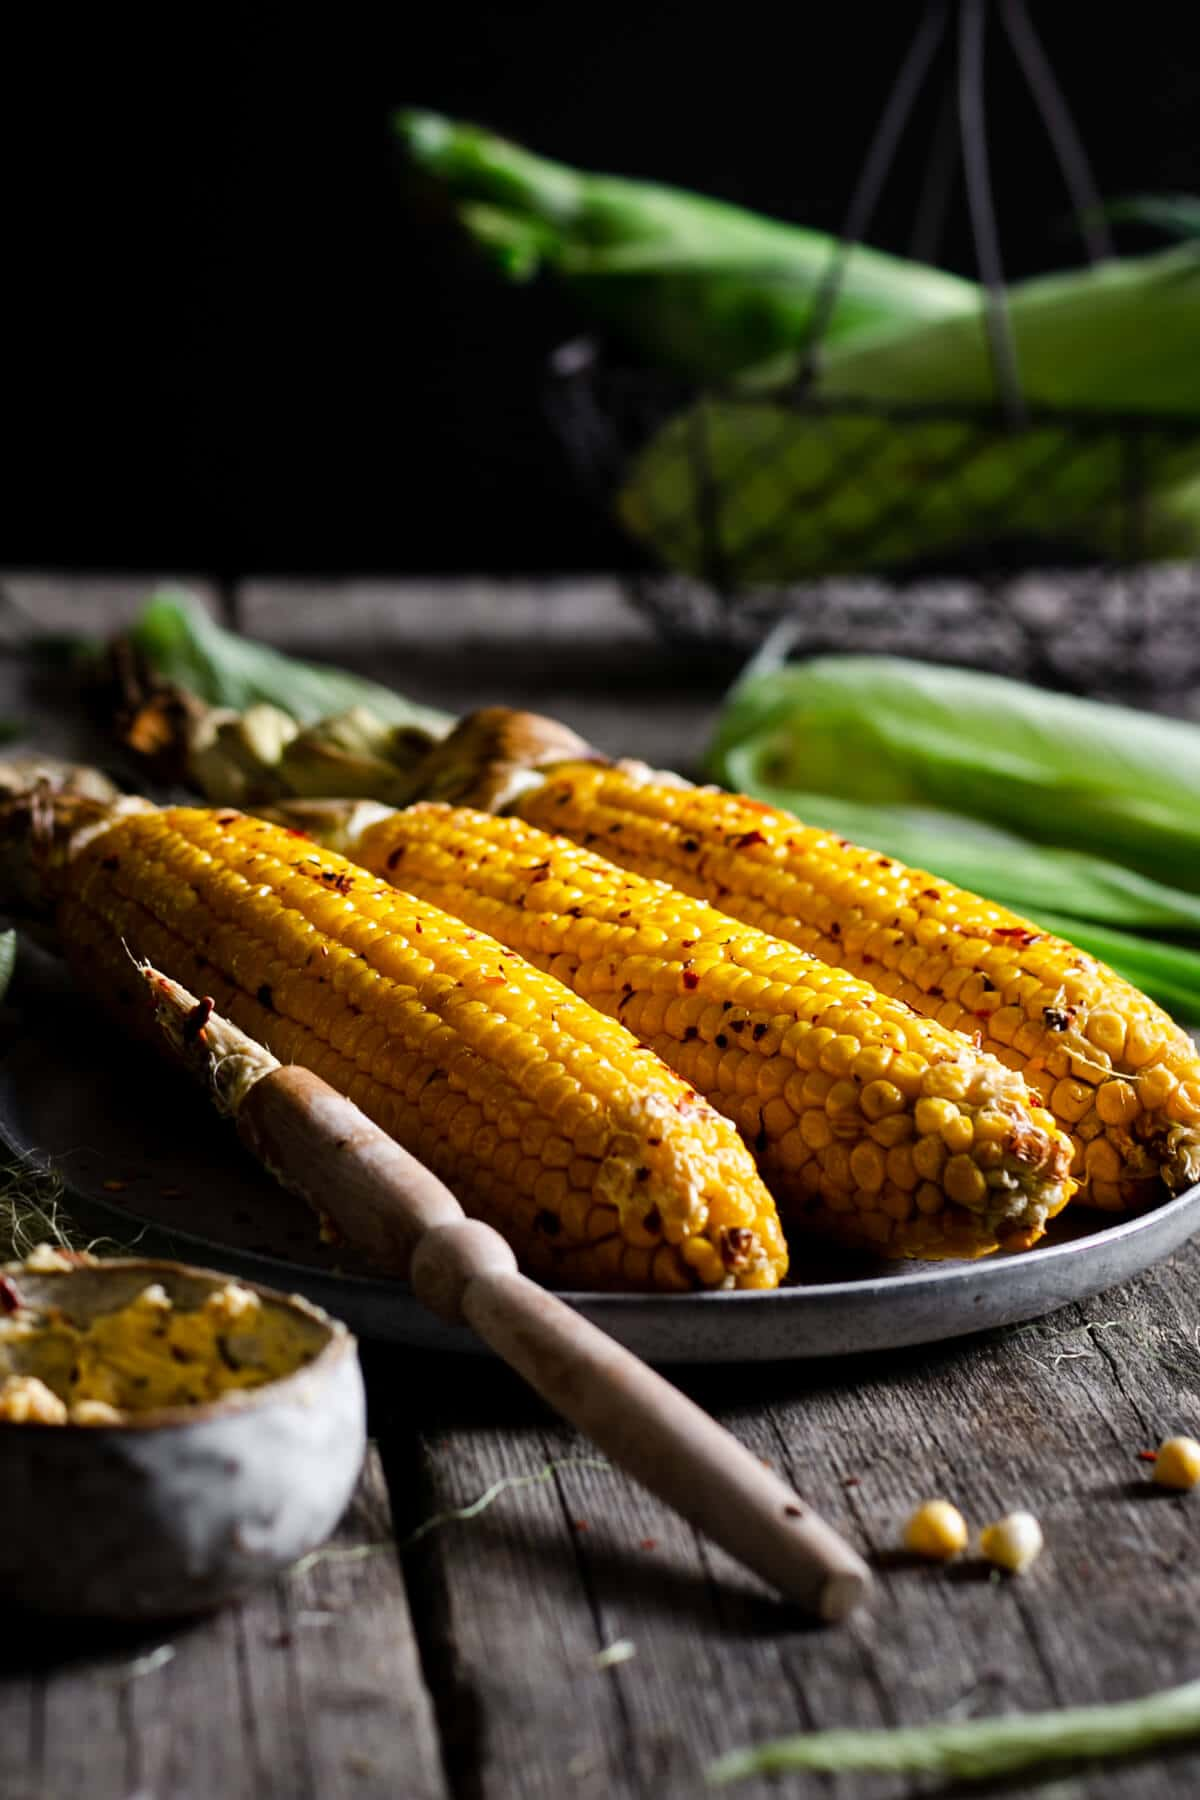 Three corn cobs on the plate with chilli butter